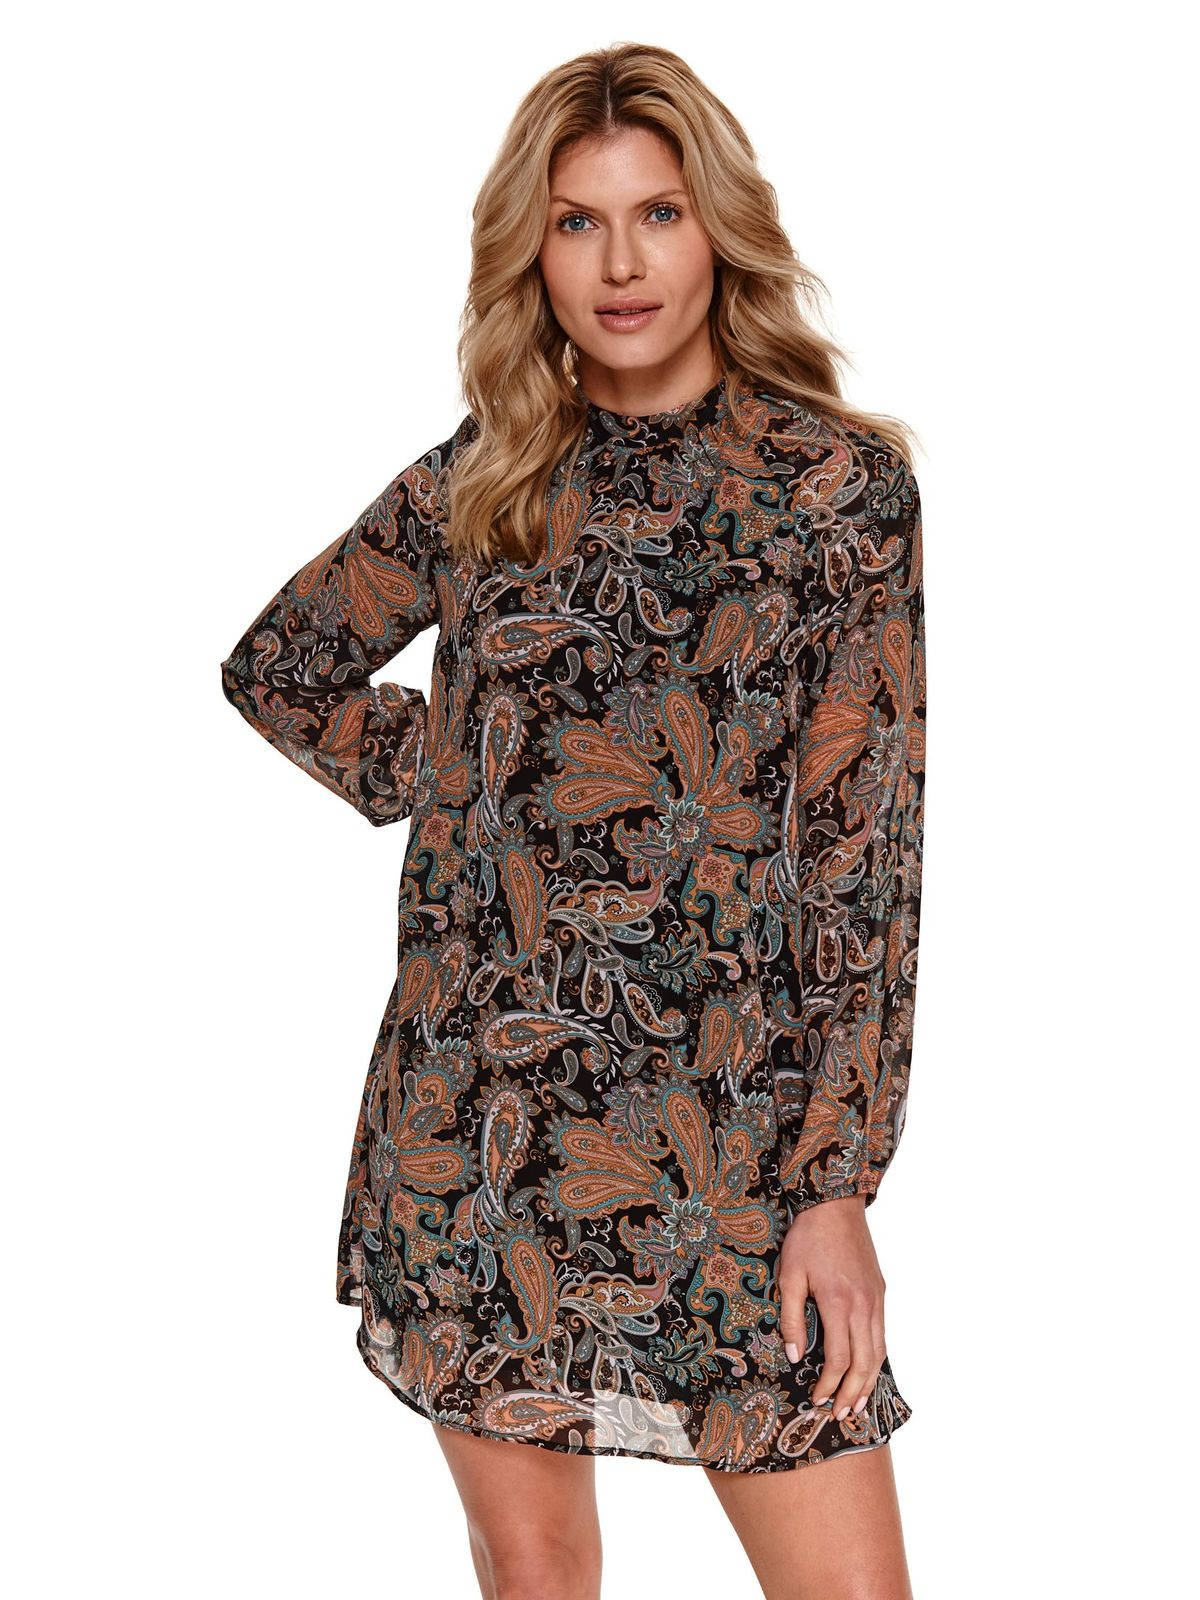 With turtle neck loose fit from veil fabric with floral print dress